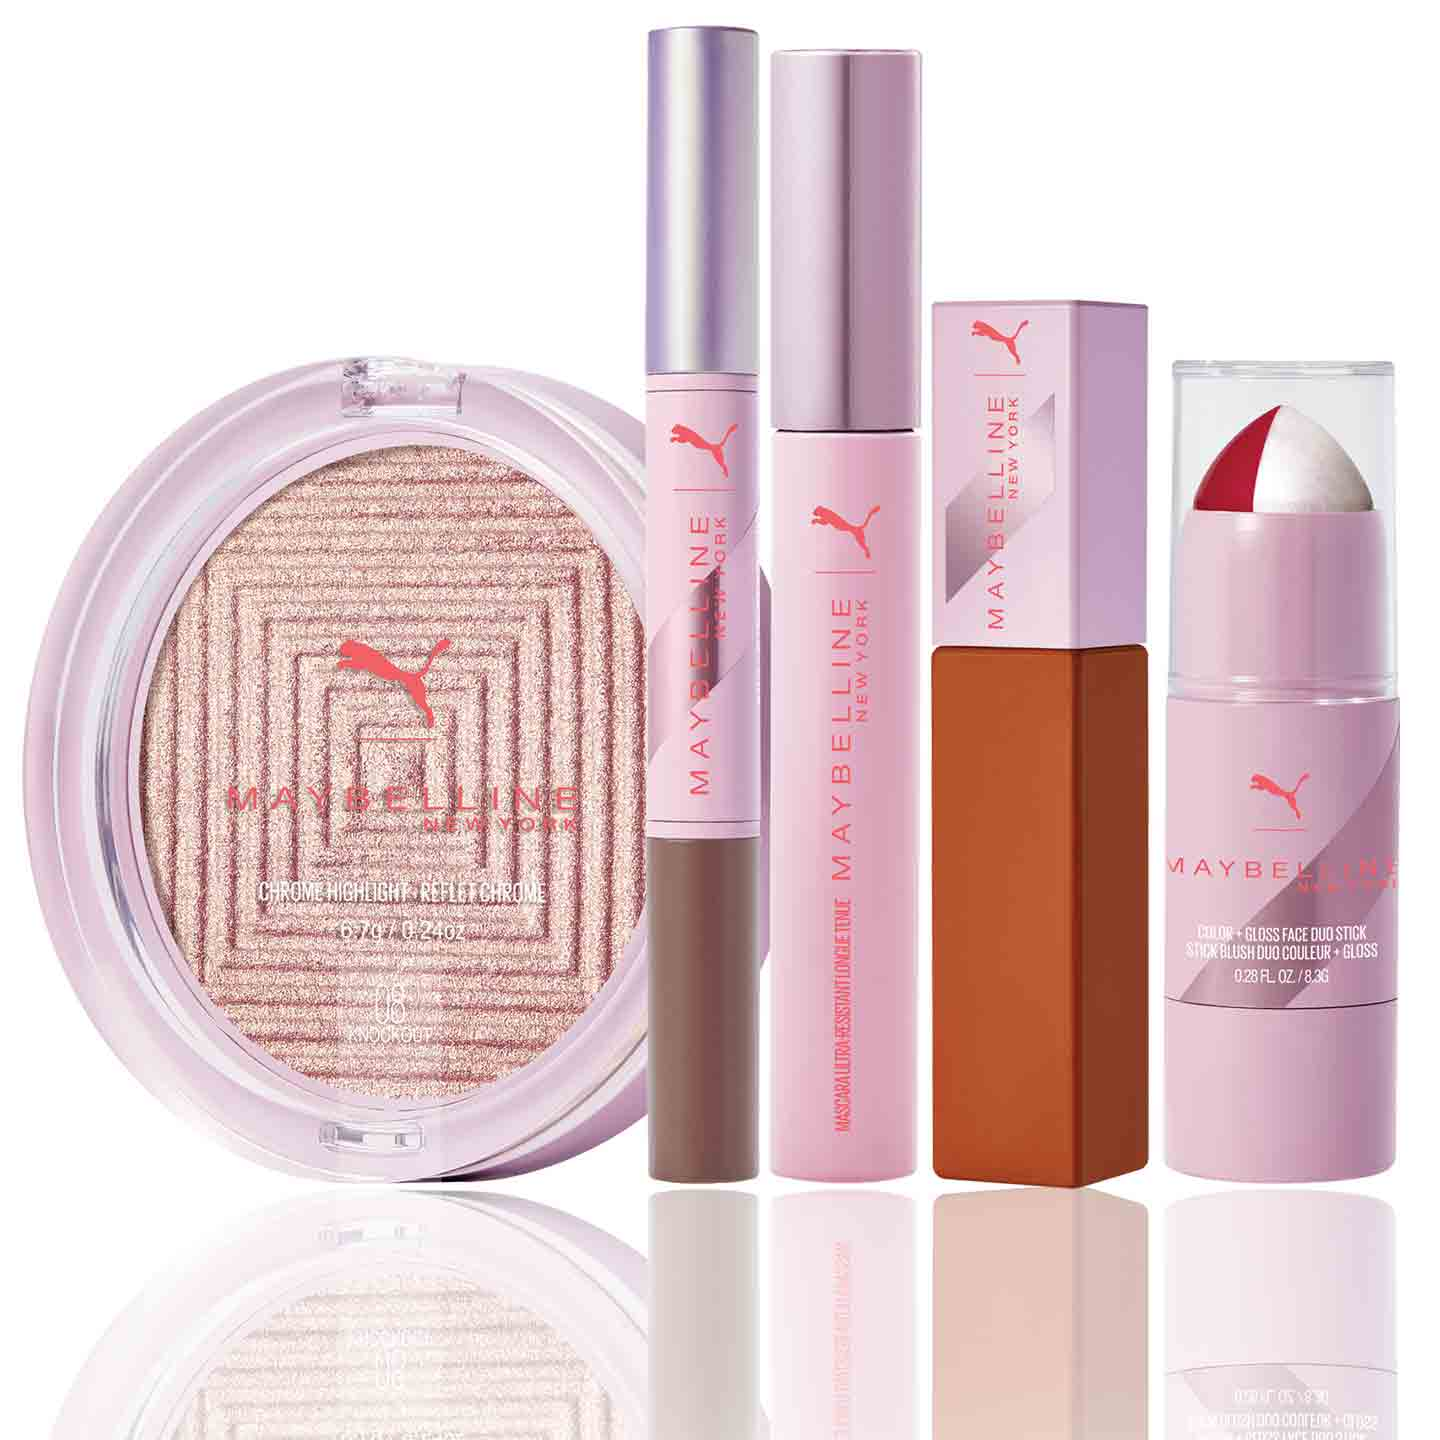 Maybelline x Puma Makeup Collection Info, Stockists + More